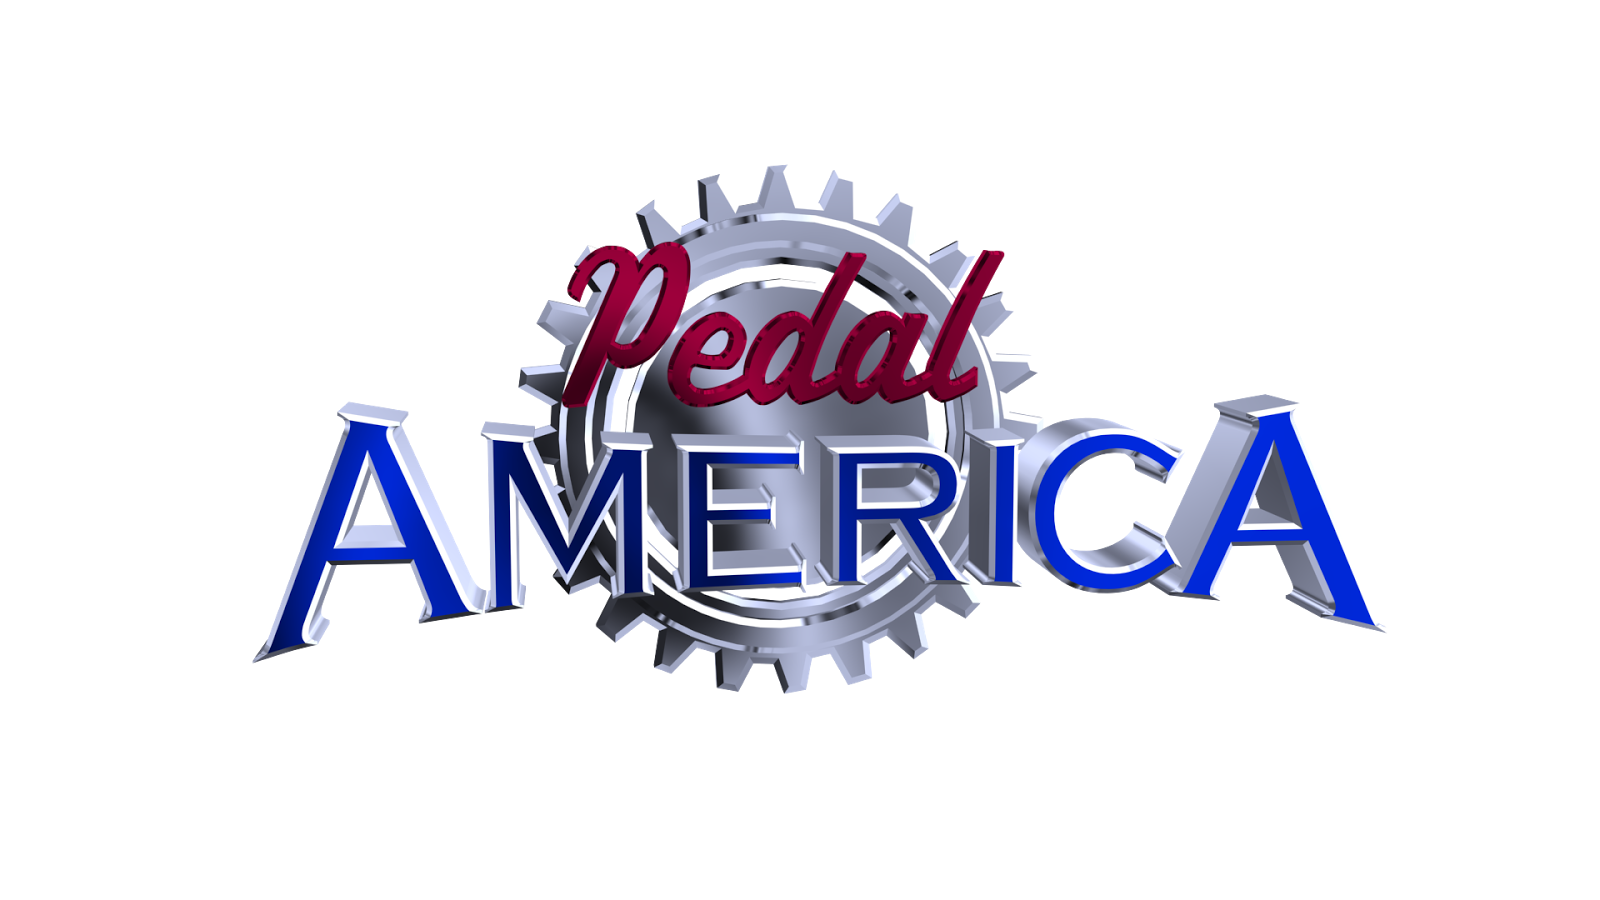 Pedal America TV Show (advertisement)